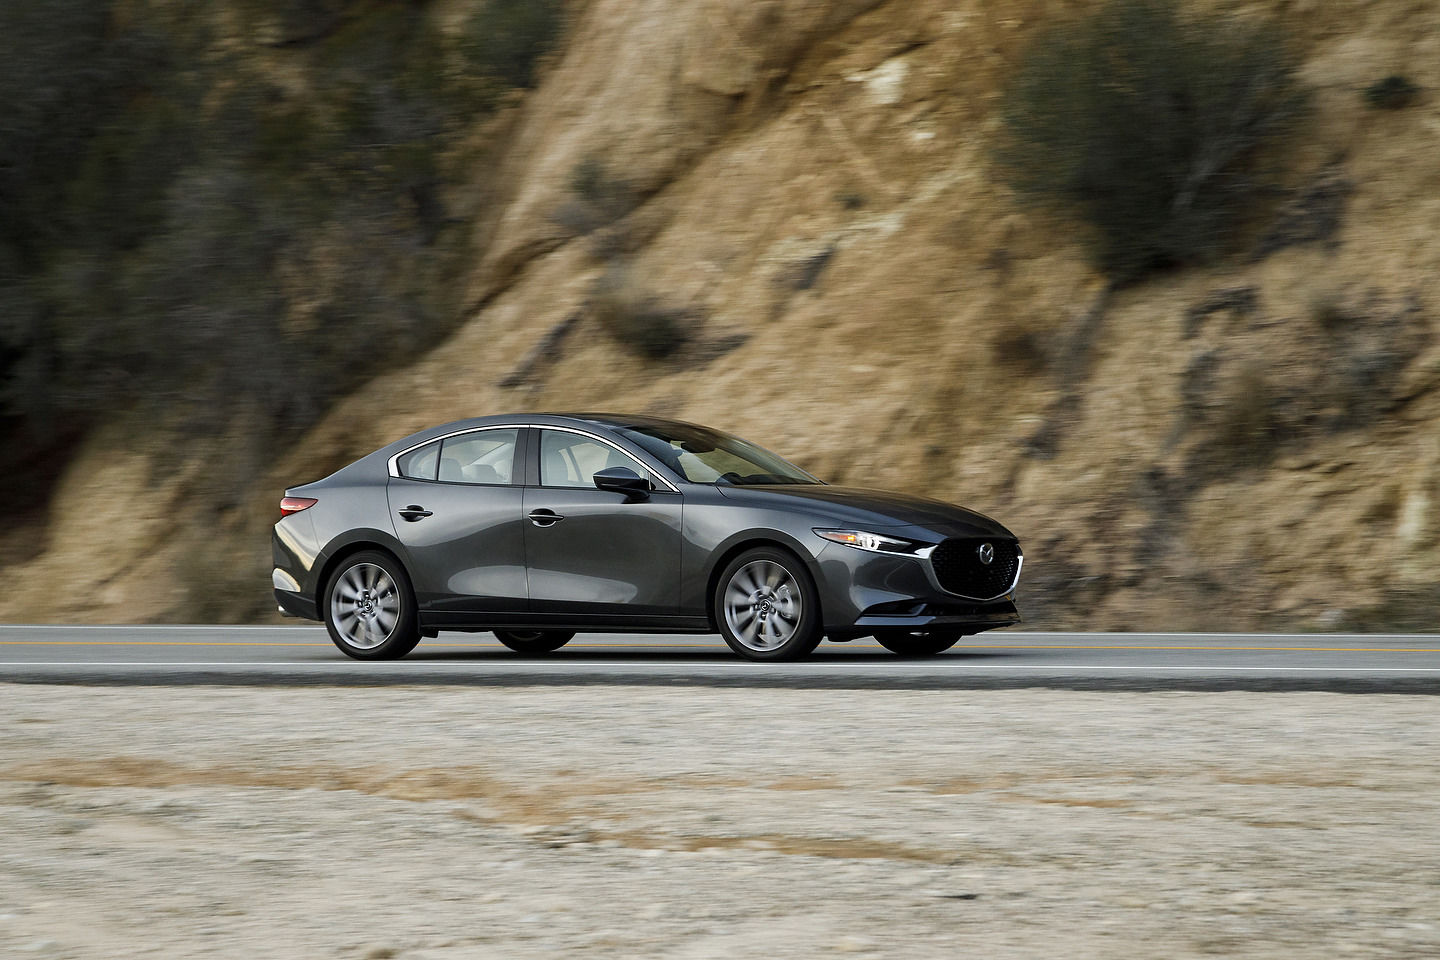 All-New 2019 Mazda3 Starts at $18,000